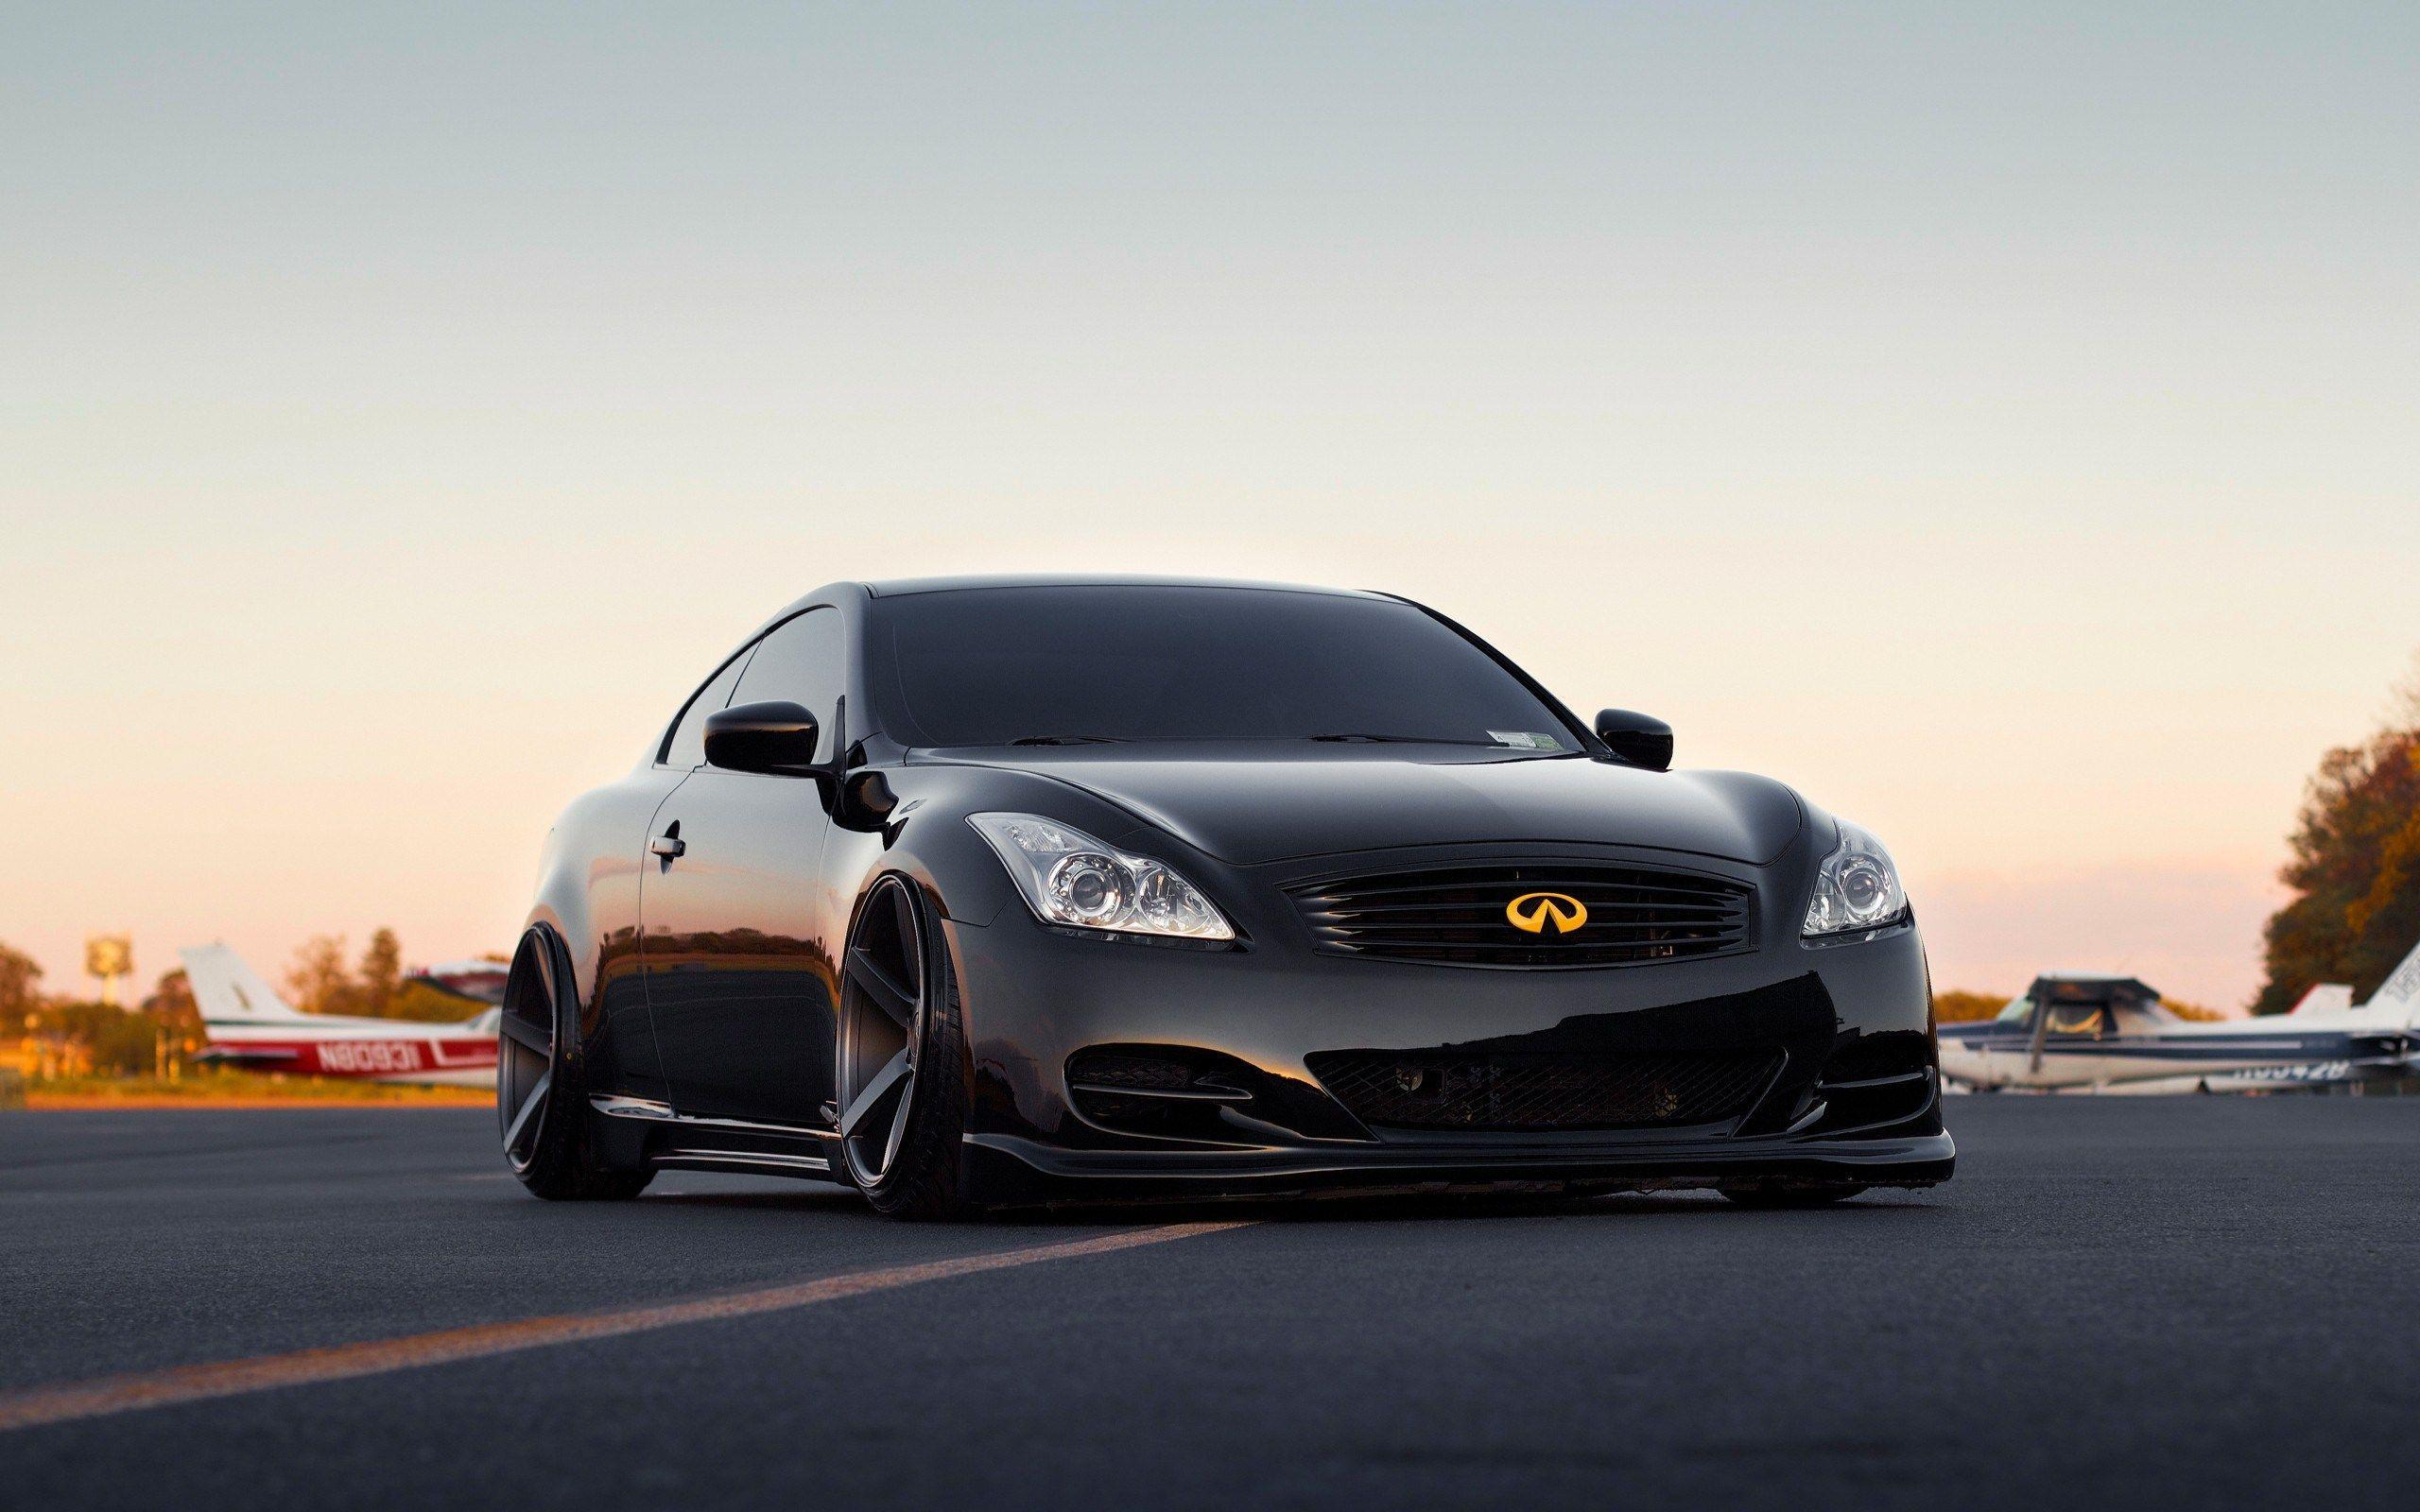 INFINITI G37 COUPE tuning custom wallpaper | 1680x1120 | 774351 ...